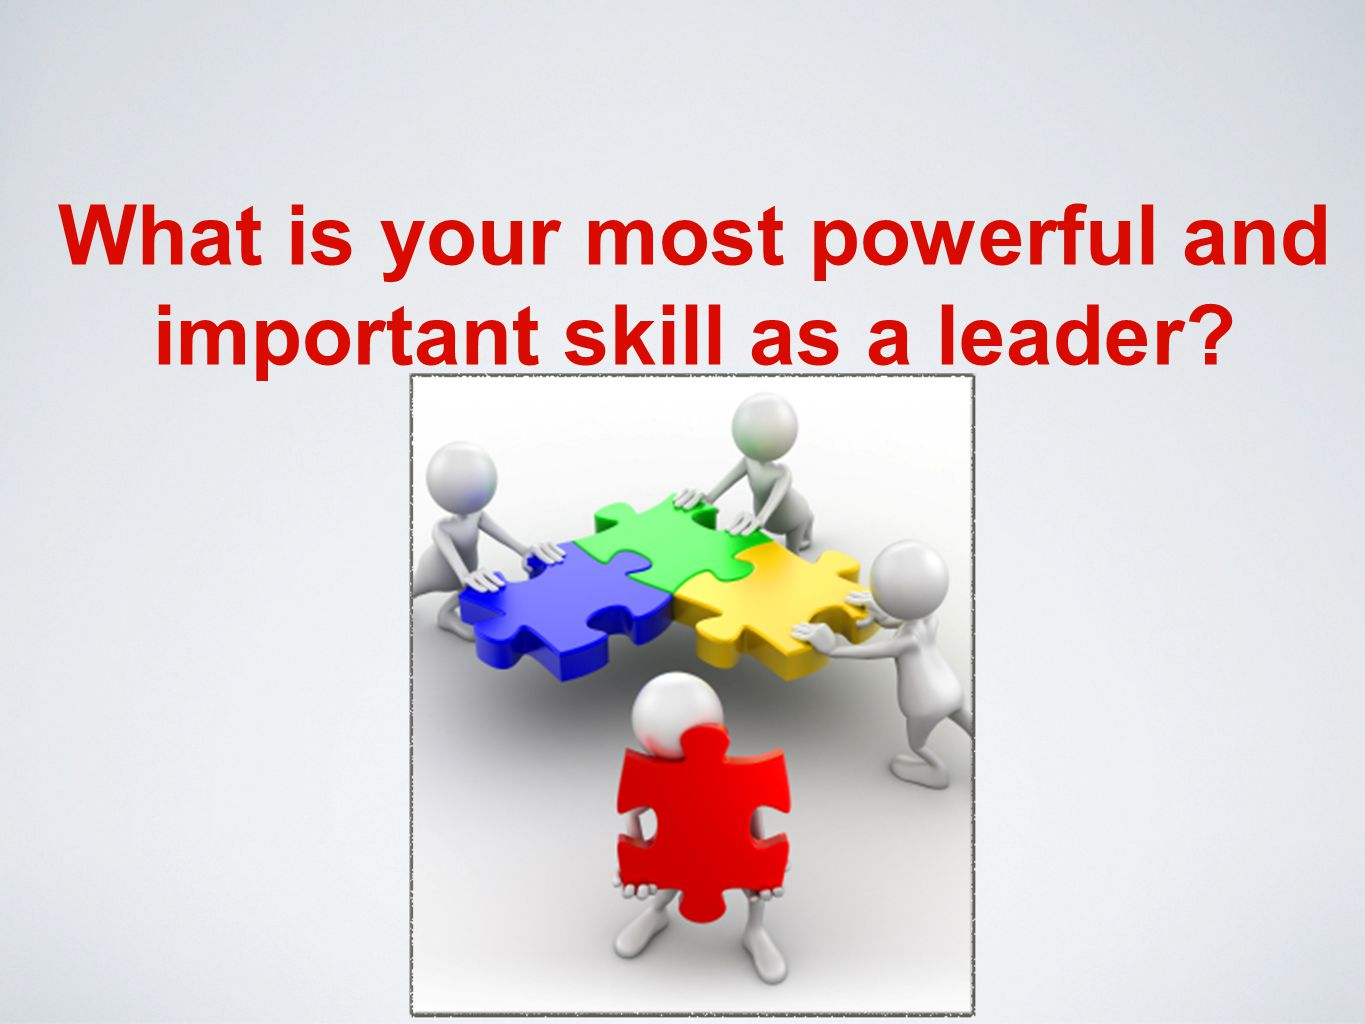 What is your most powerful and important skill as a leader